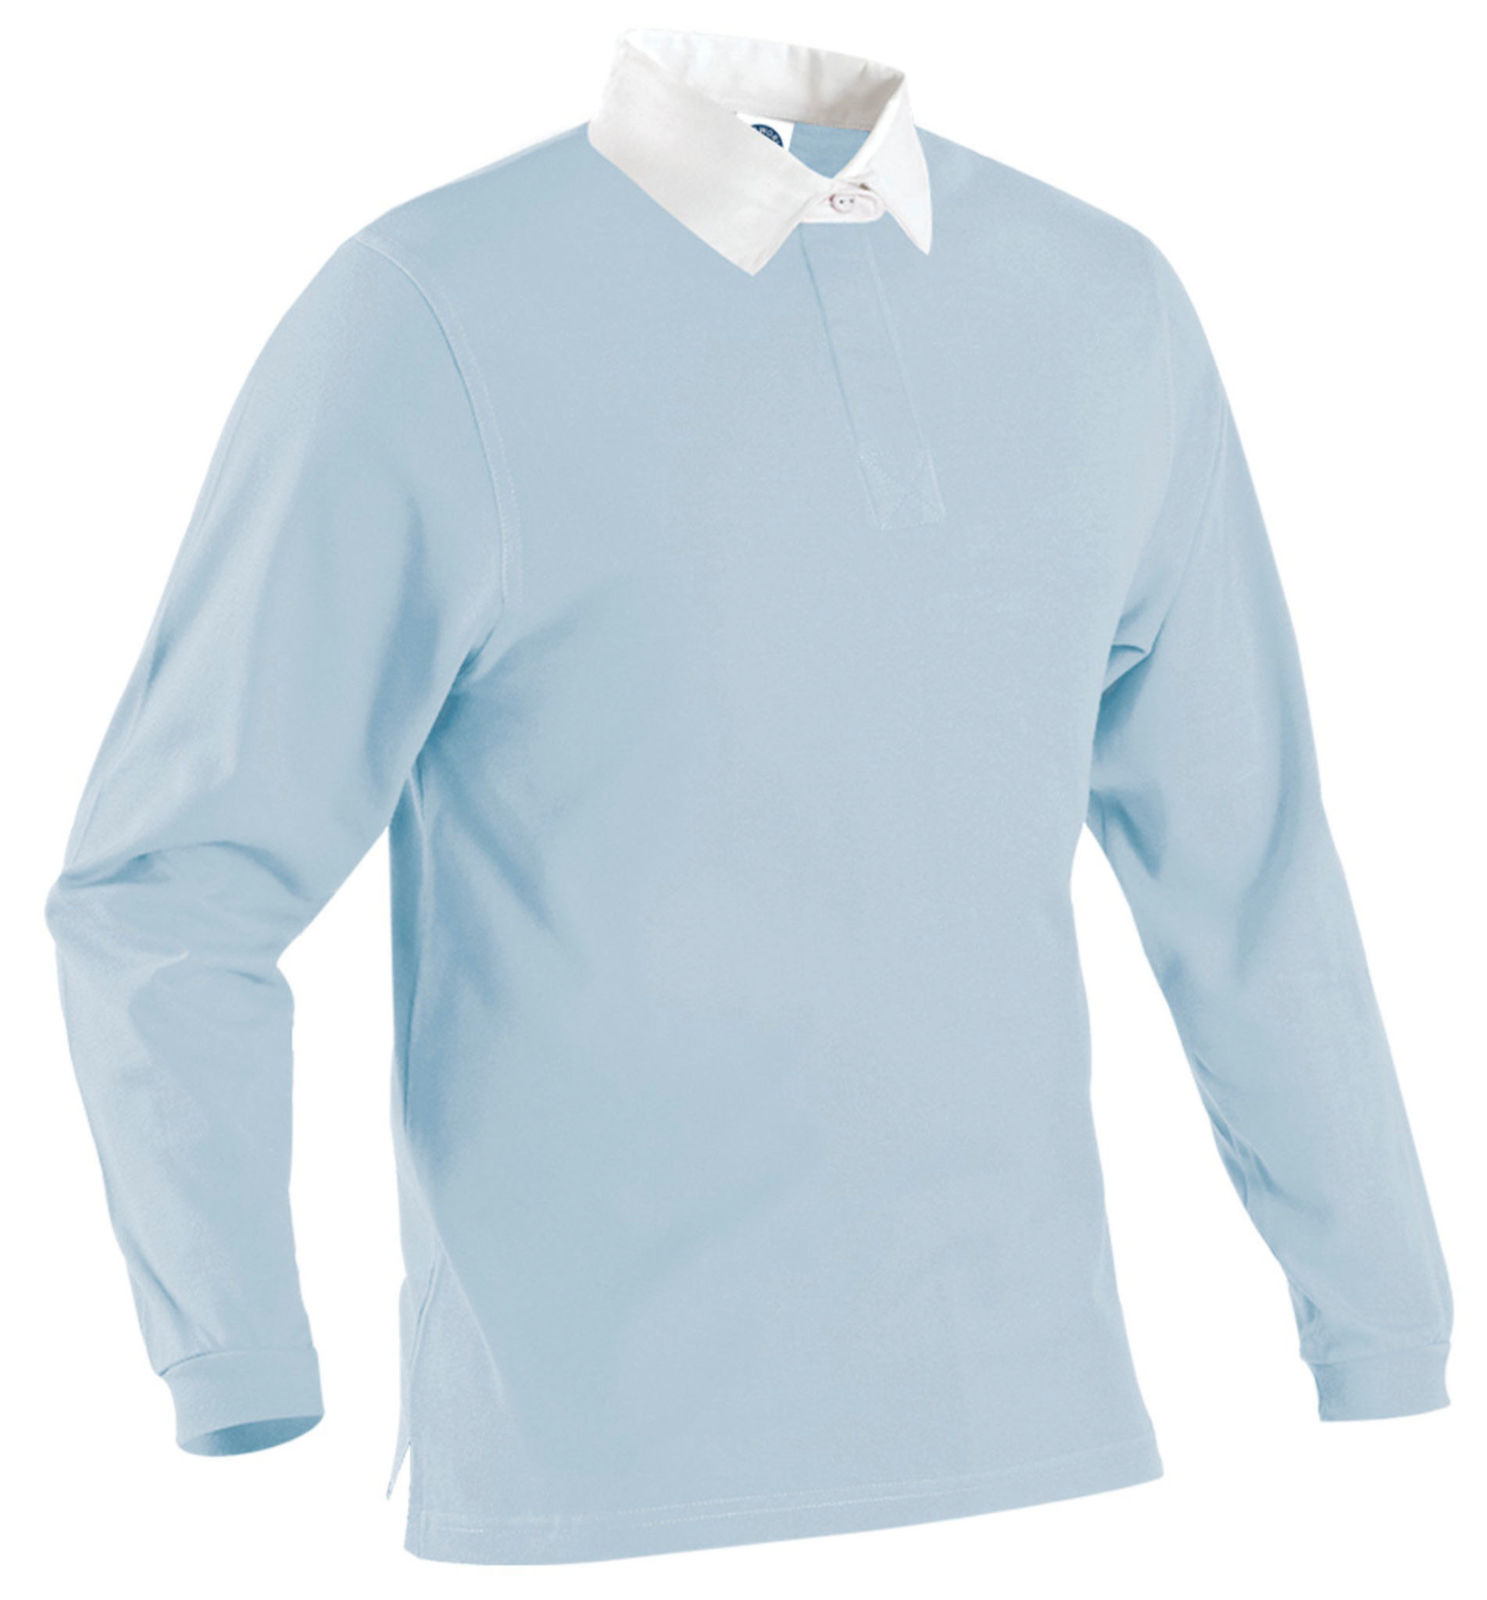 Rugby Longues Homme Classic Shirt Pour Polo Manches Personnalisé RnWcdqaW